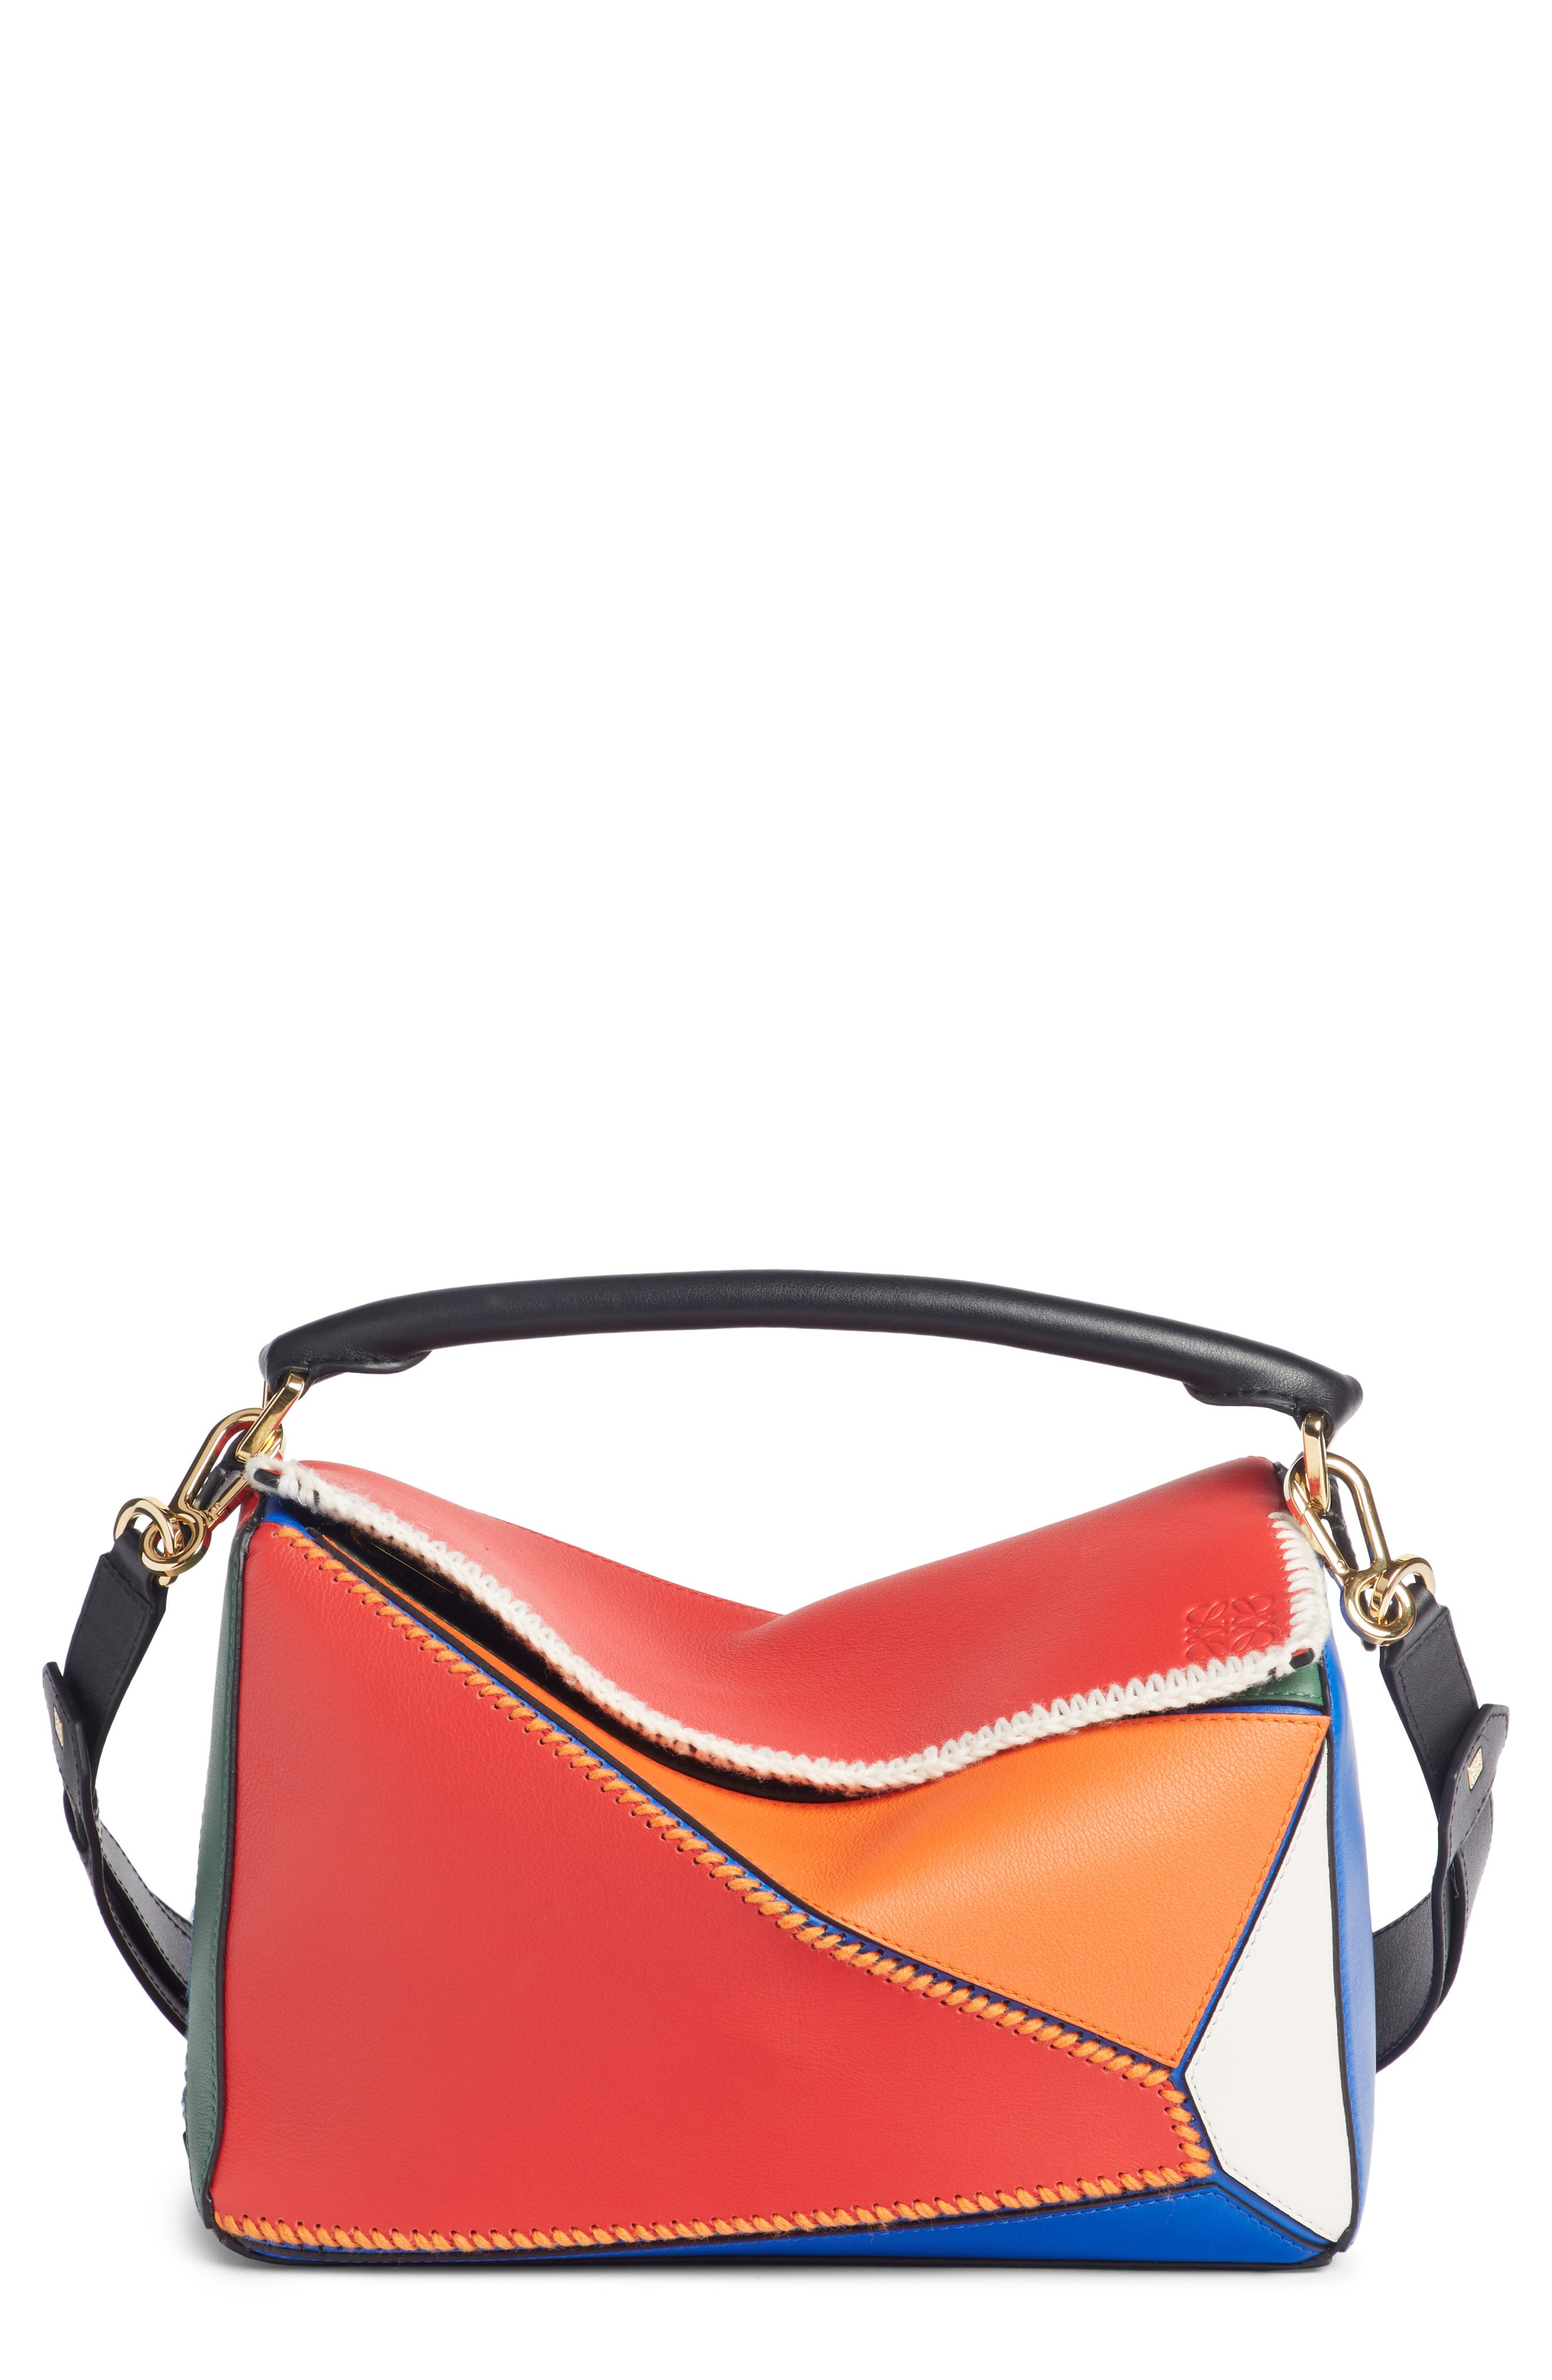 Puzzle Calfskin Leather Bag,                             Main thumbnail 1, color,                             RED MULTI